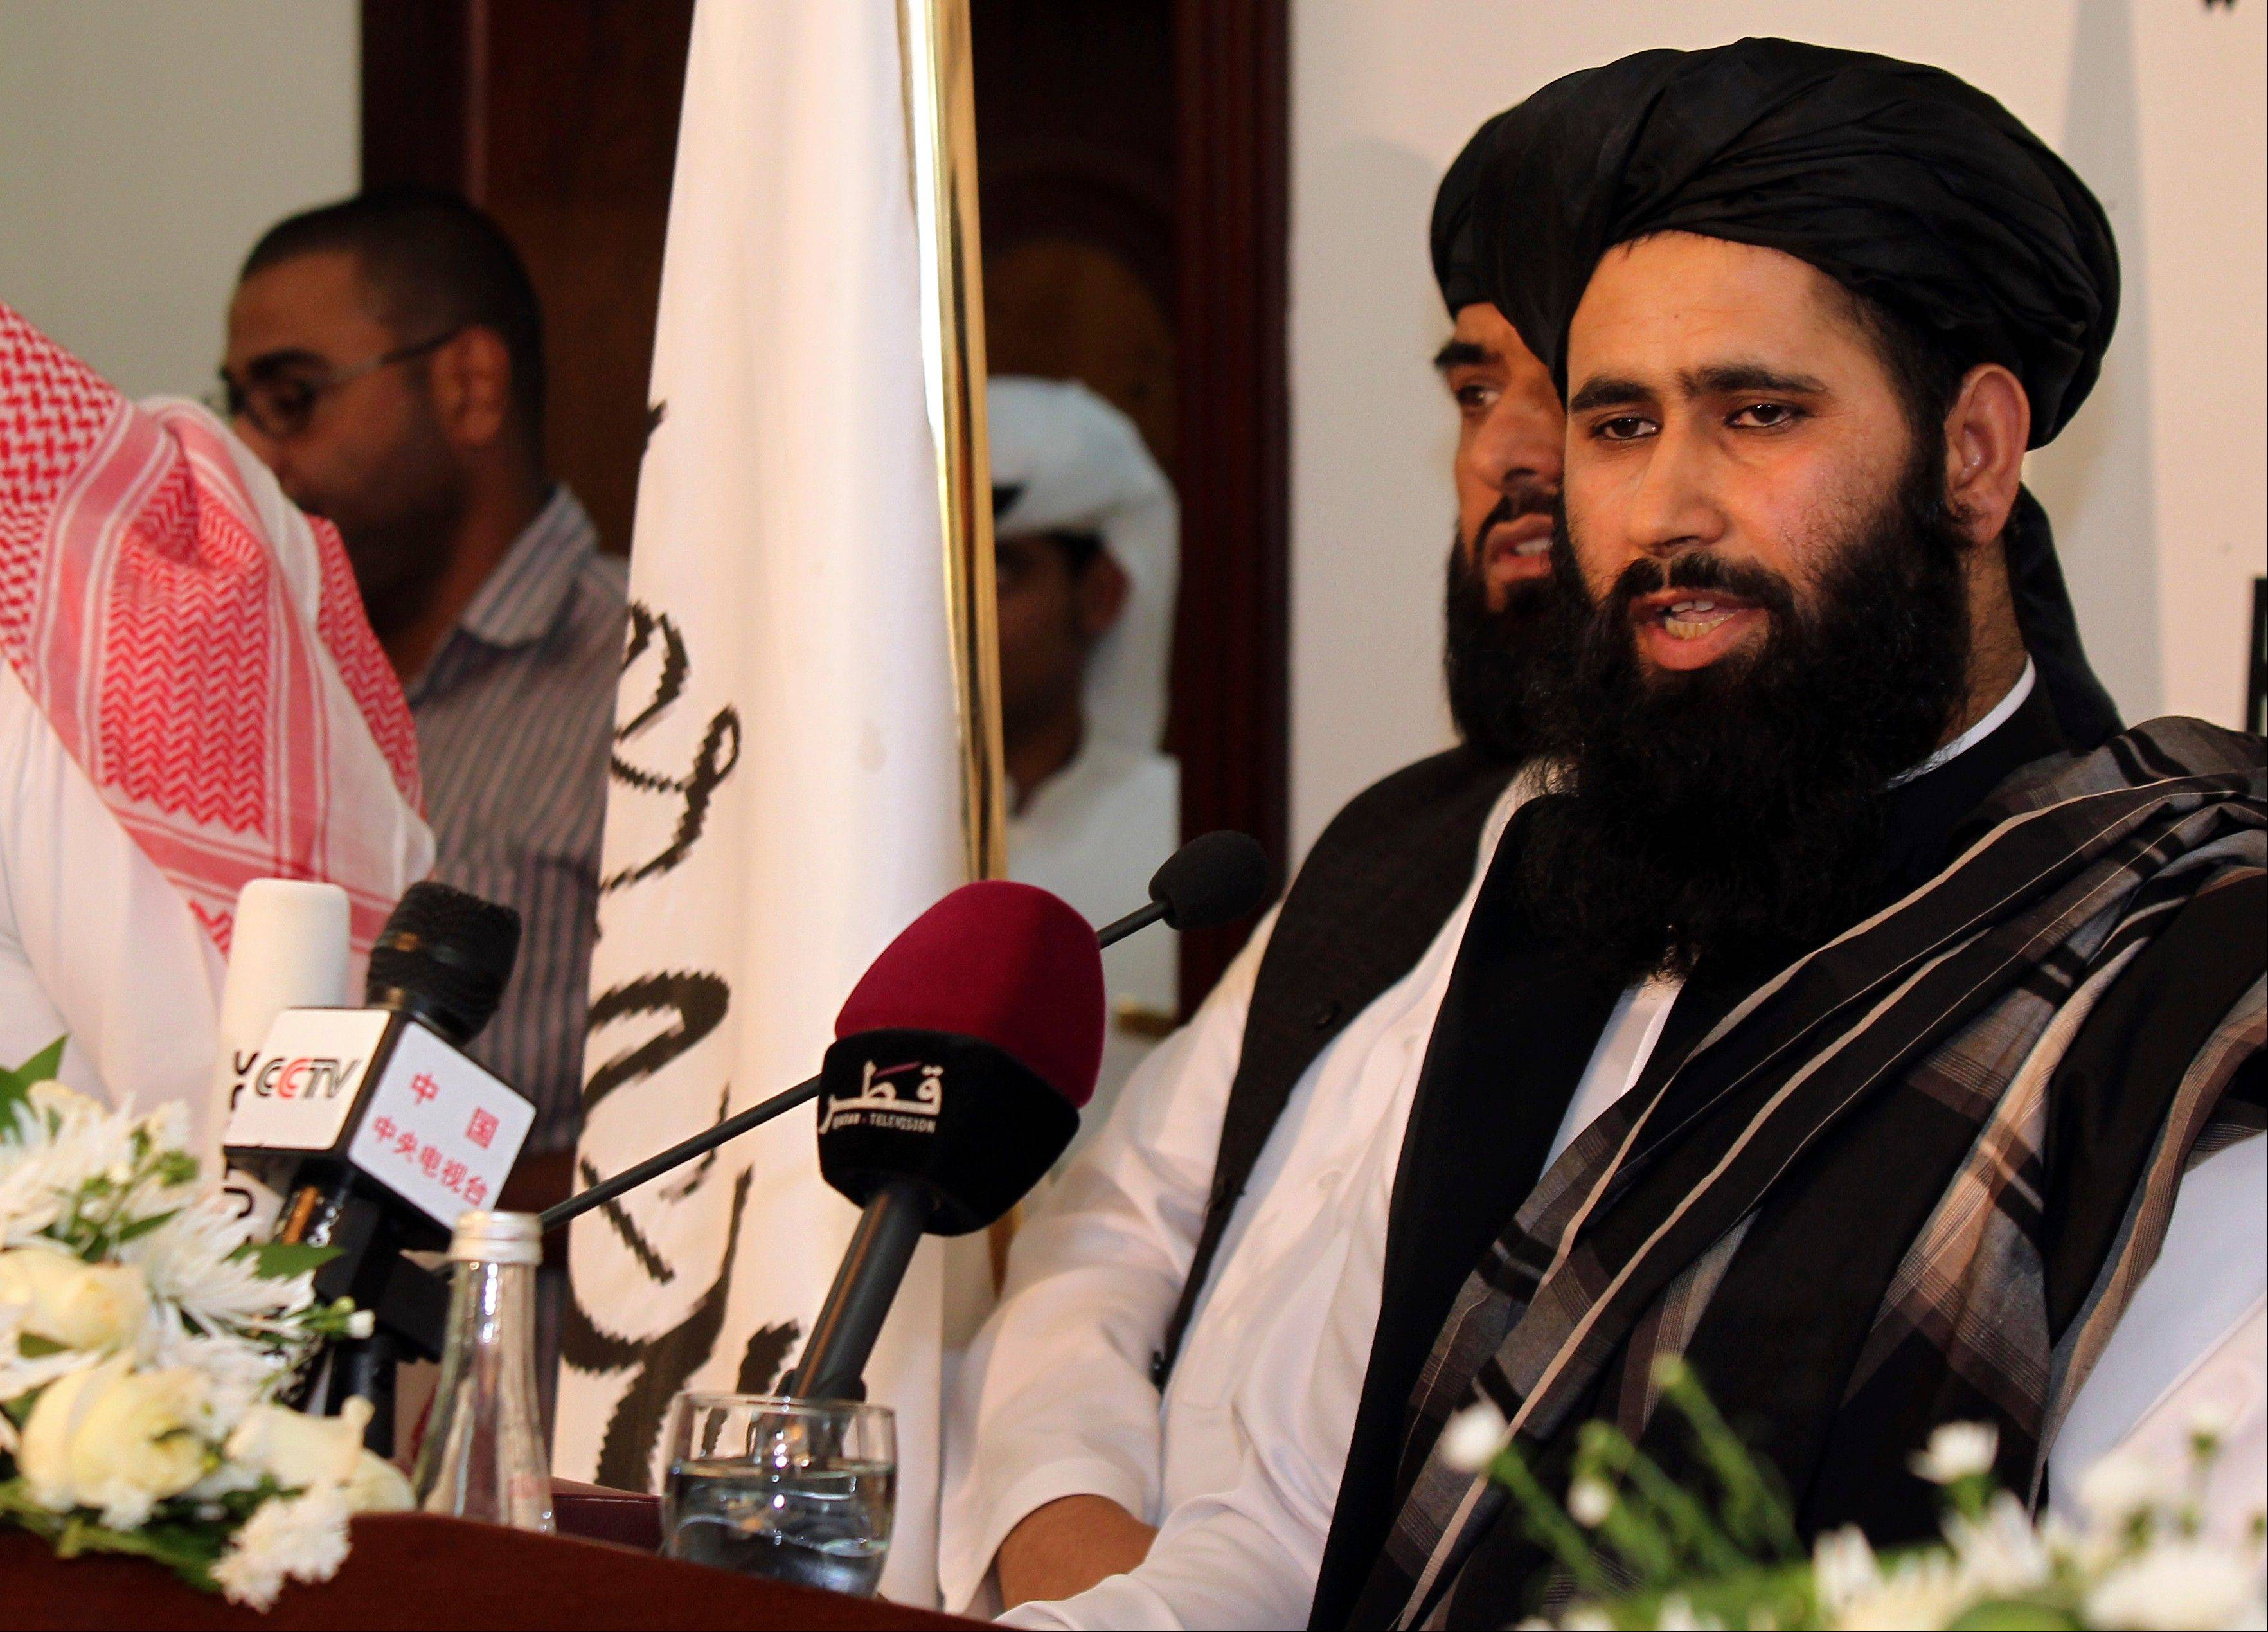 Muhammad Naeem a representative of the Taliban speaks during a press conference at the official opening of their office in Doha, Qatar, Tuesday, June 18, 2013. The Taliban and the U.S. announced Tuesday that they will hold talks on finding a political solution to ending nearly 12 years of war in Afghanistan, but on Wednesday Afghanistan's president said Wednesday he will not pursue peace talks with the Taliban unless the United States steps out of the negotiations.